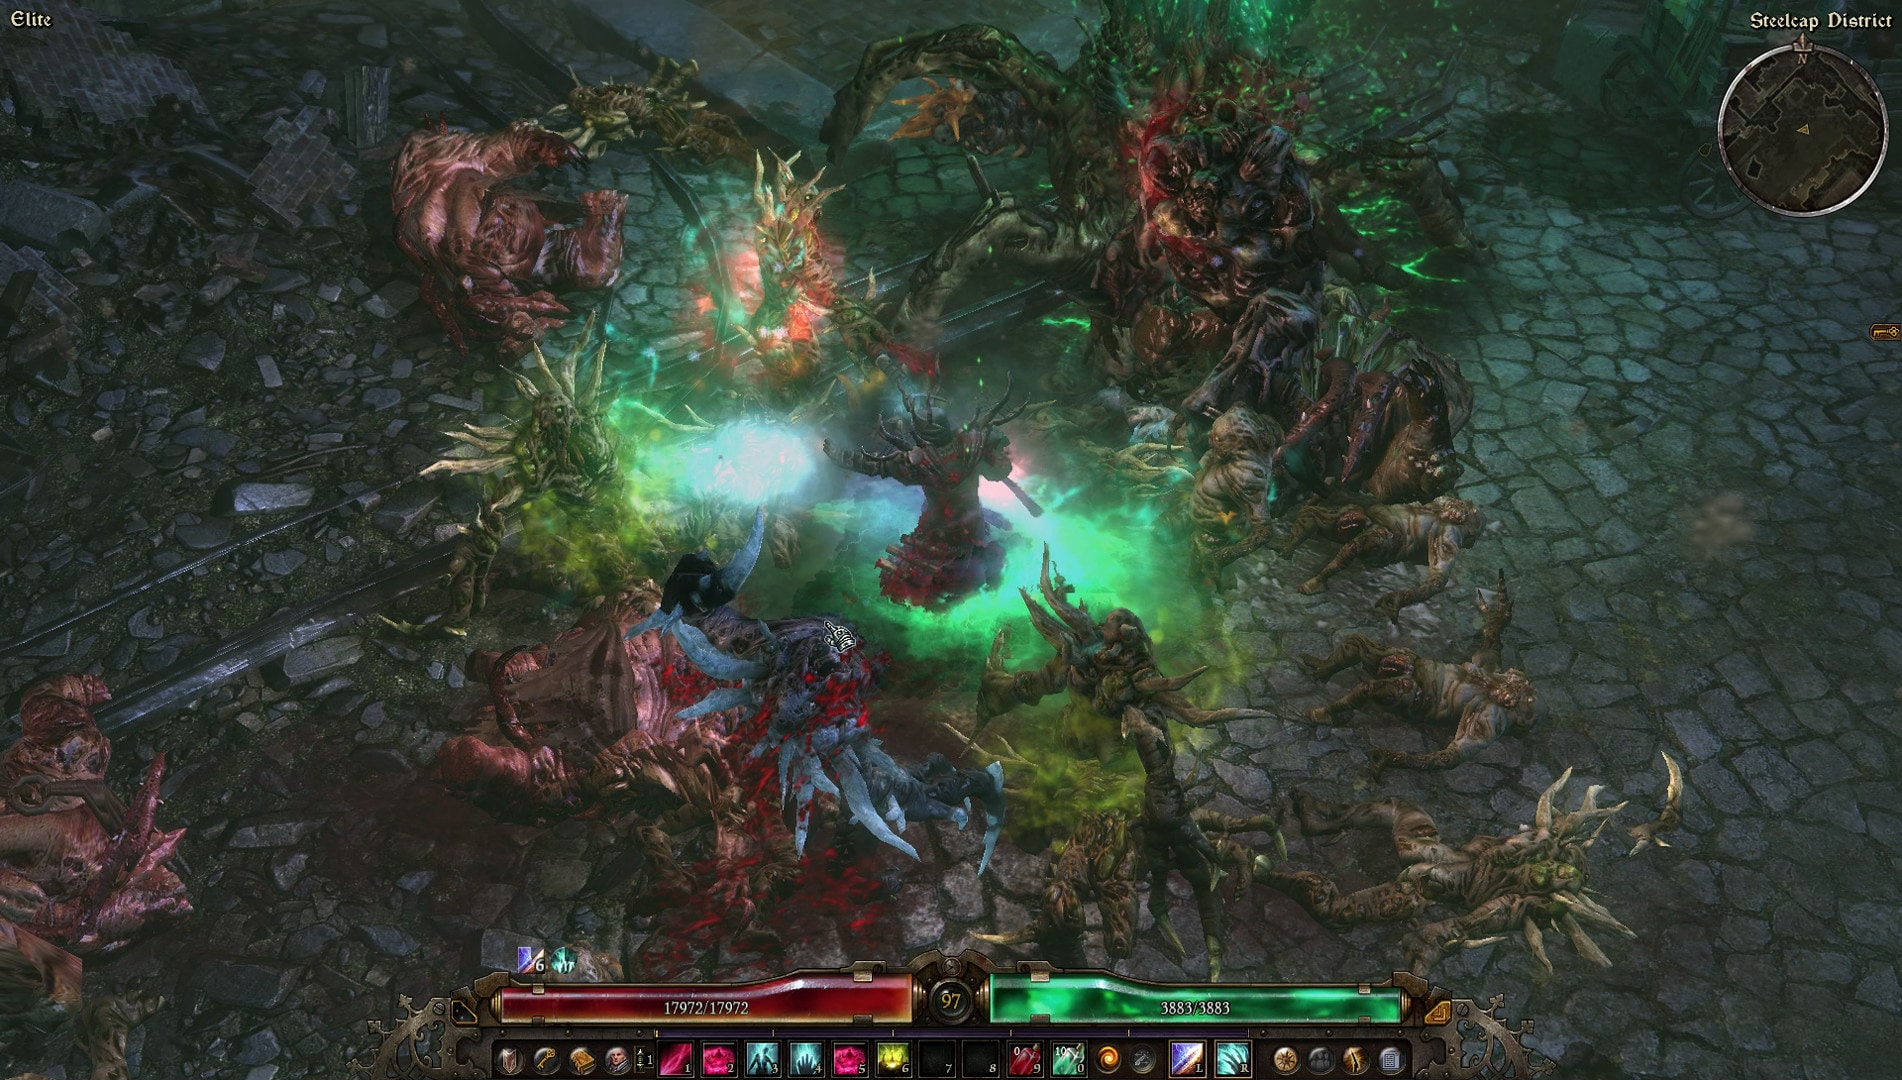 Grim Dawn - Ashes of Malmouth Expansion Steam Gift EUROPE - 4